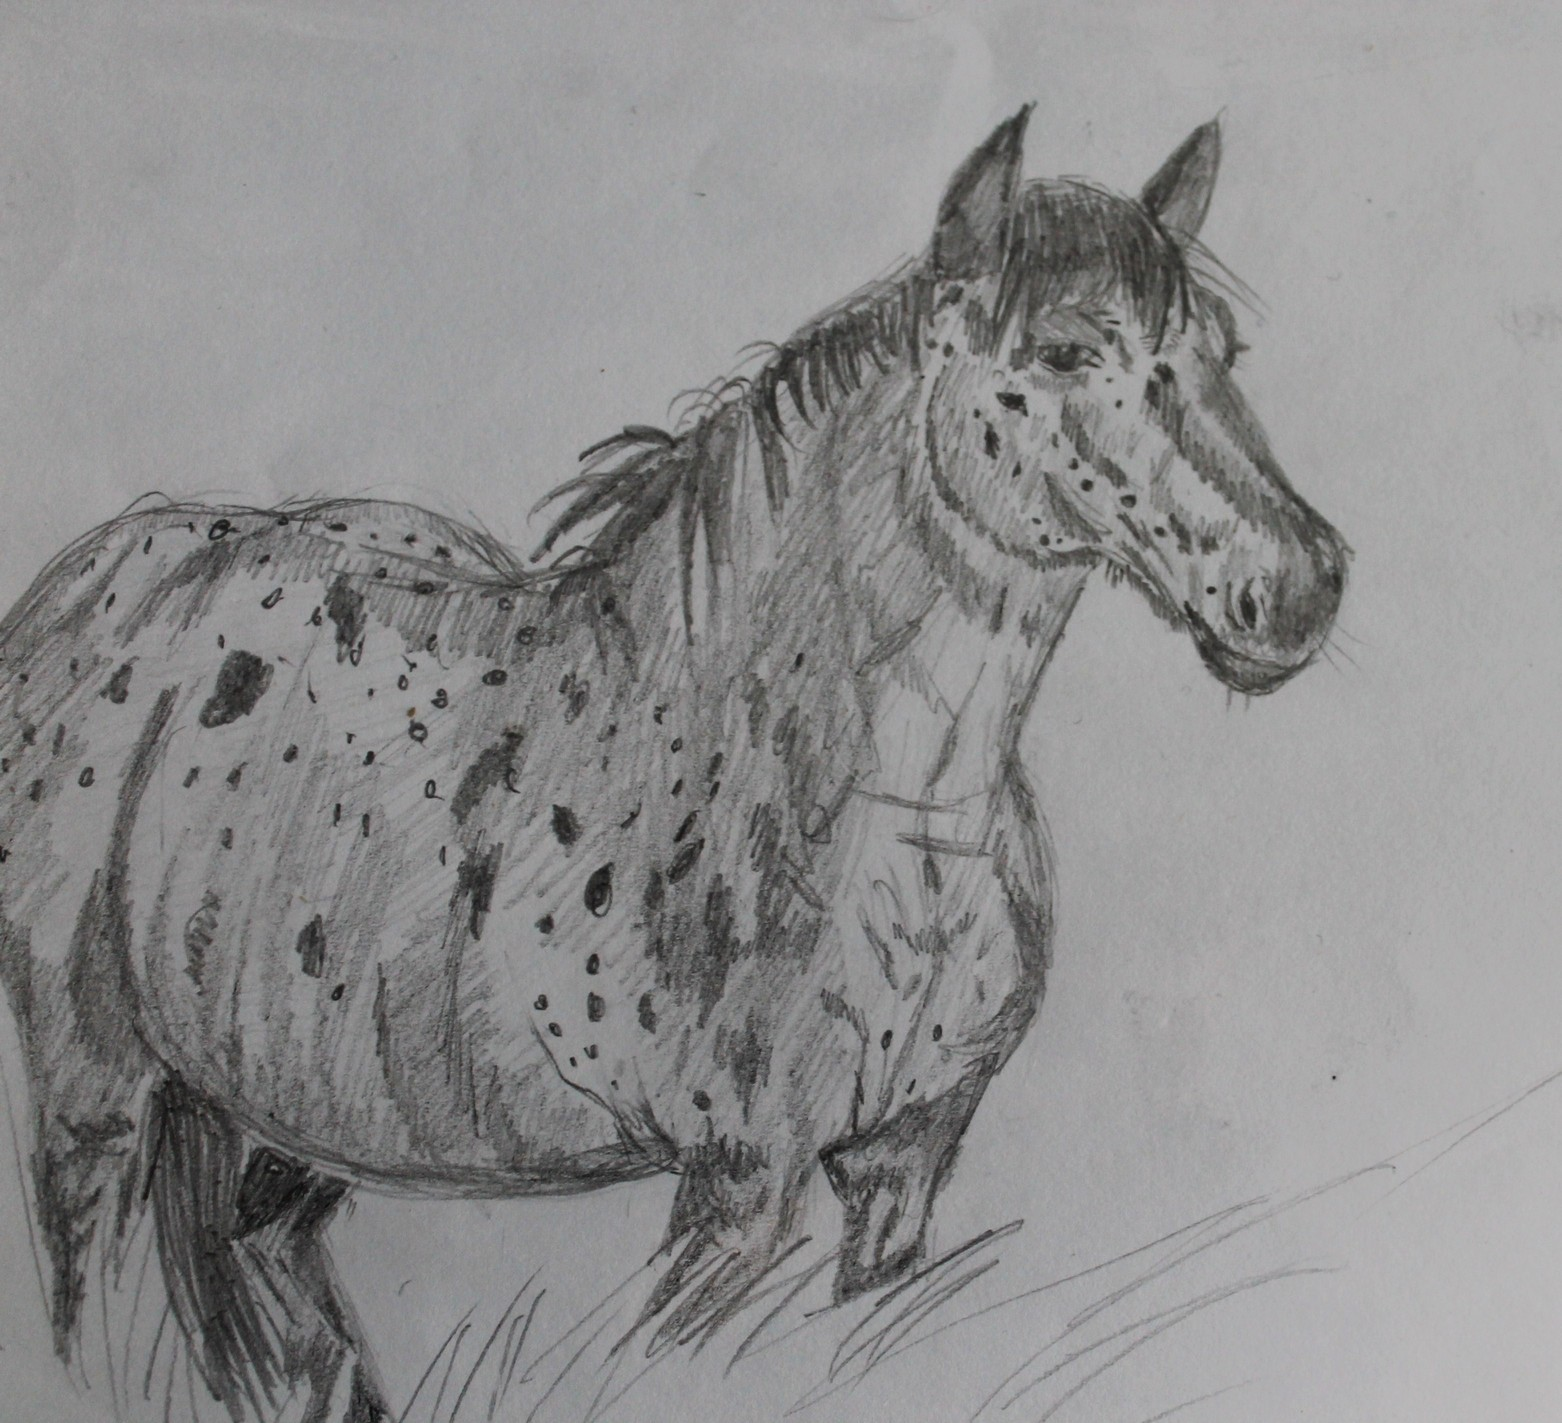 2010, 4B pencil drawing of a  horse